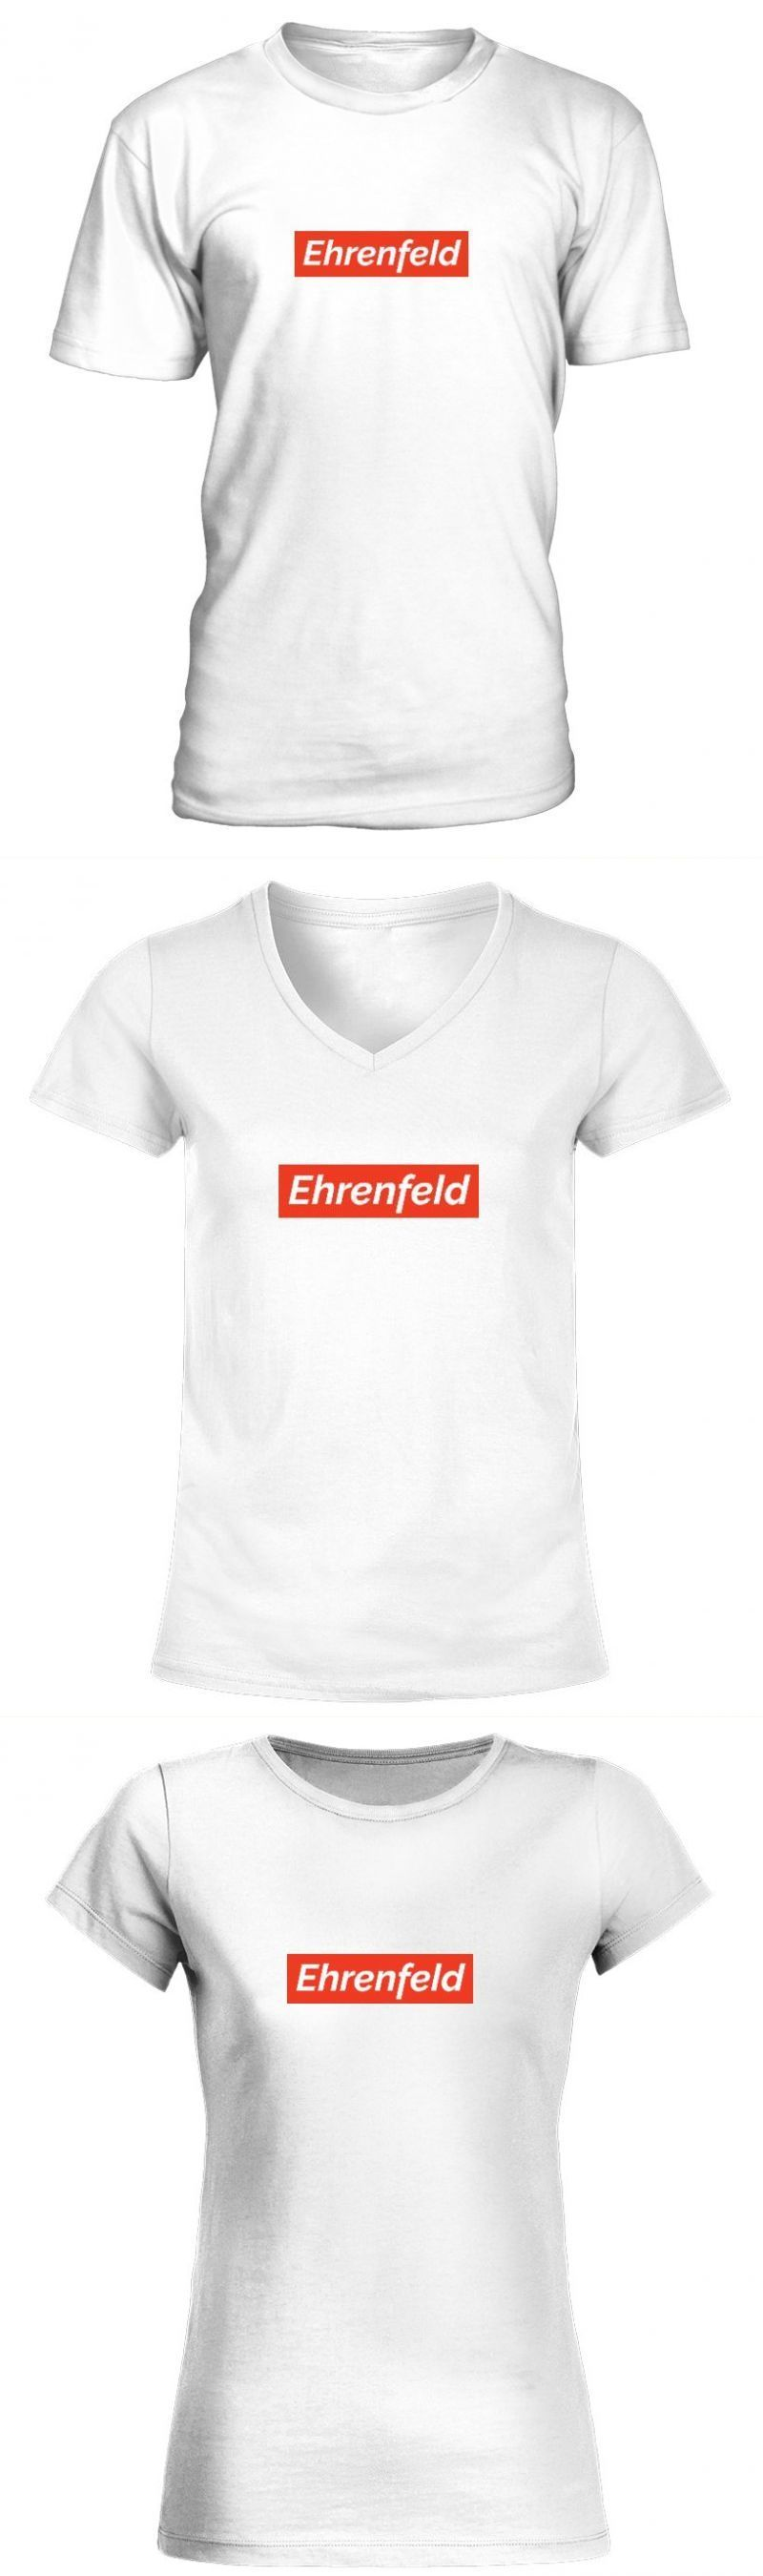 great prices temperament shoes sneakers for cheap Photography t shirts amazon köln ehrenfeld photo d un t ...